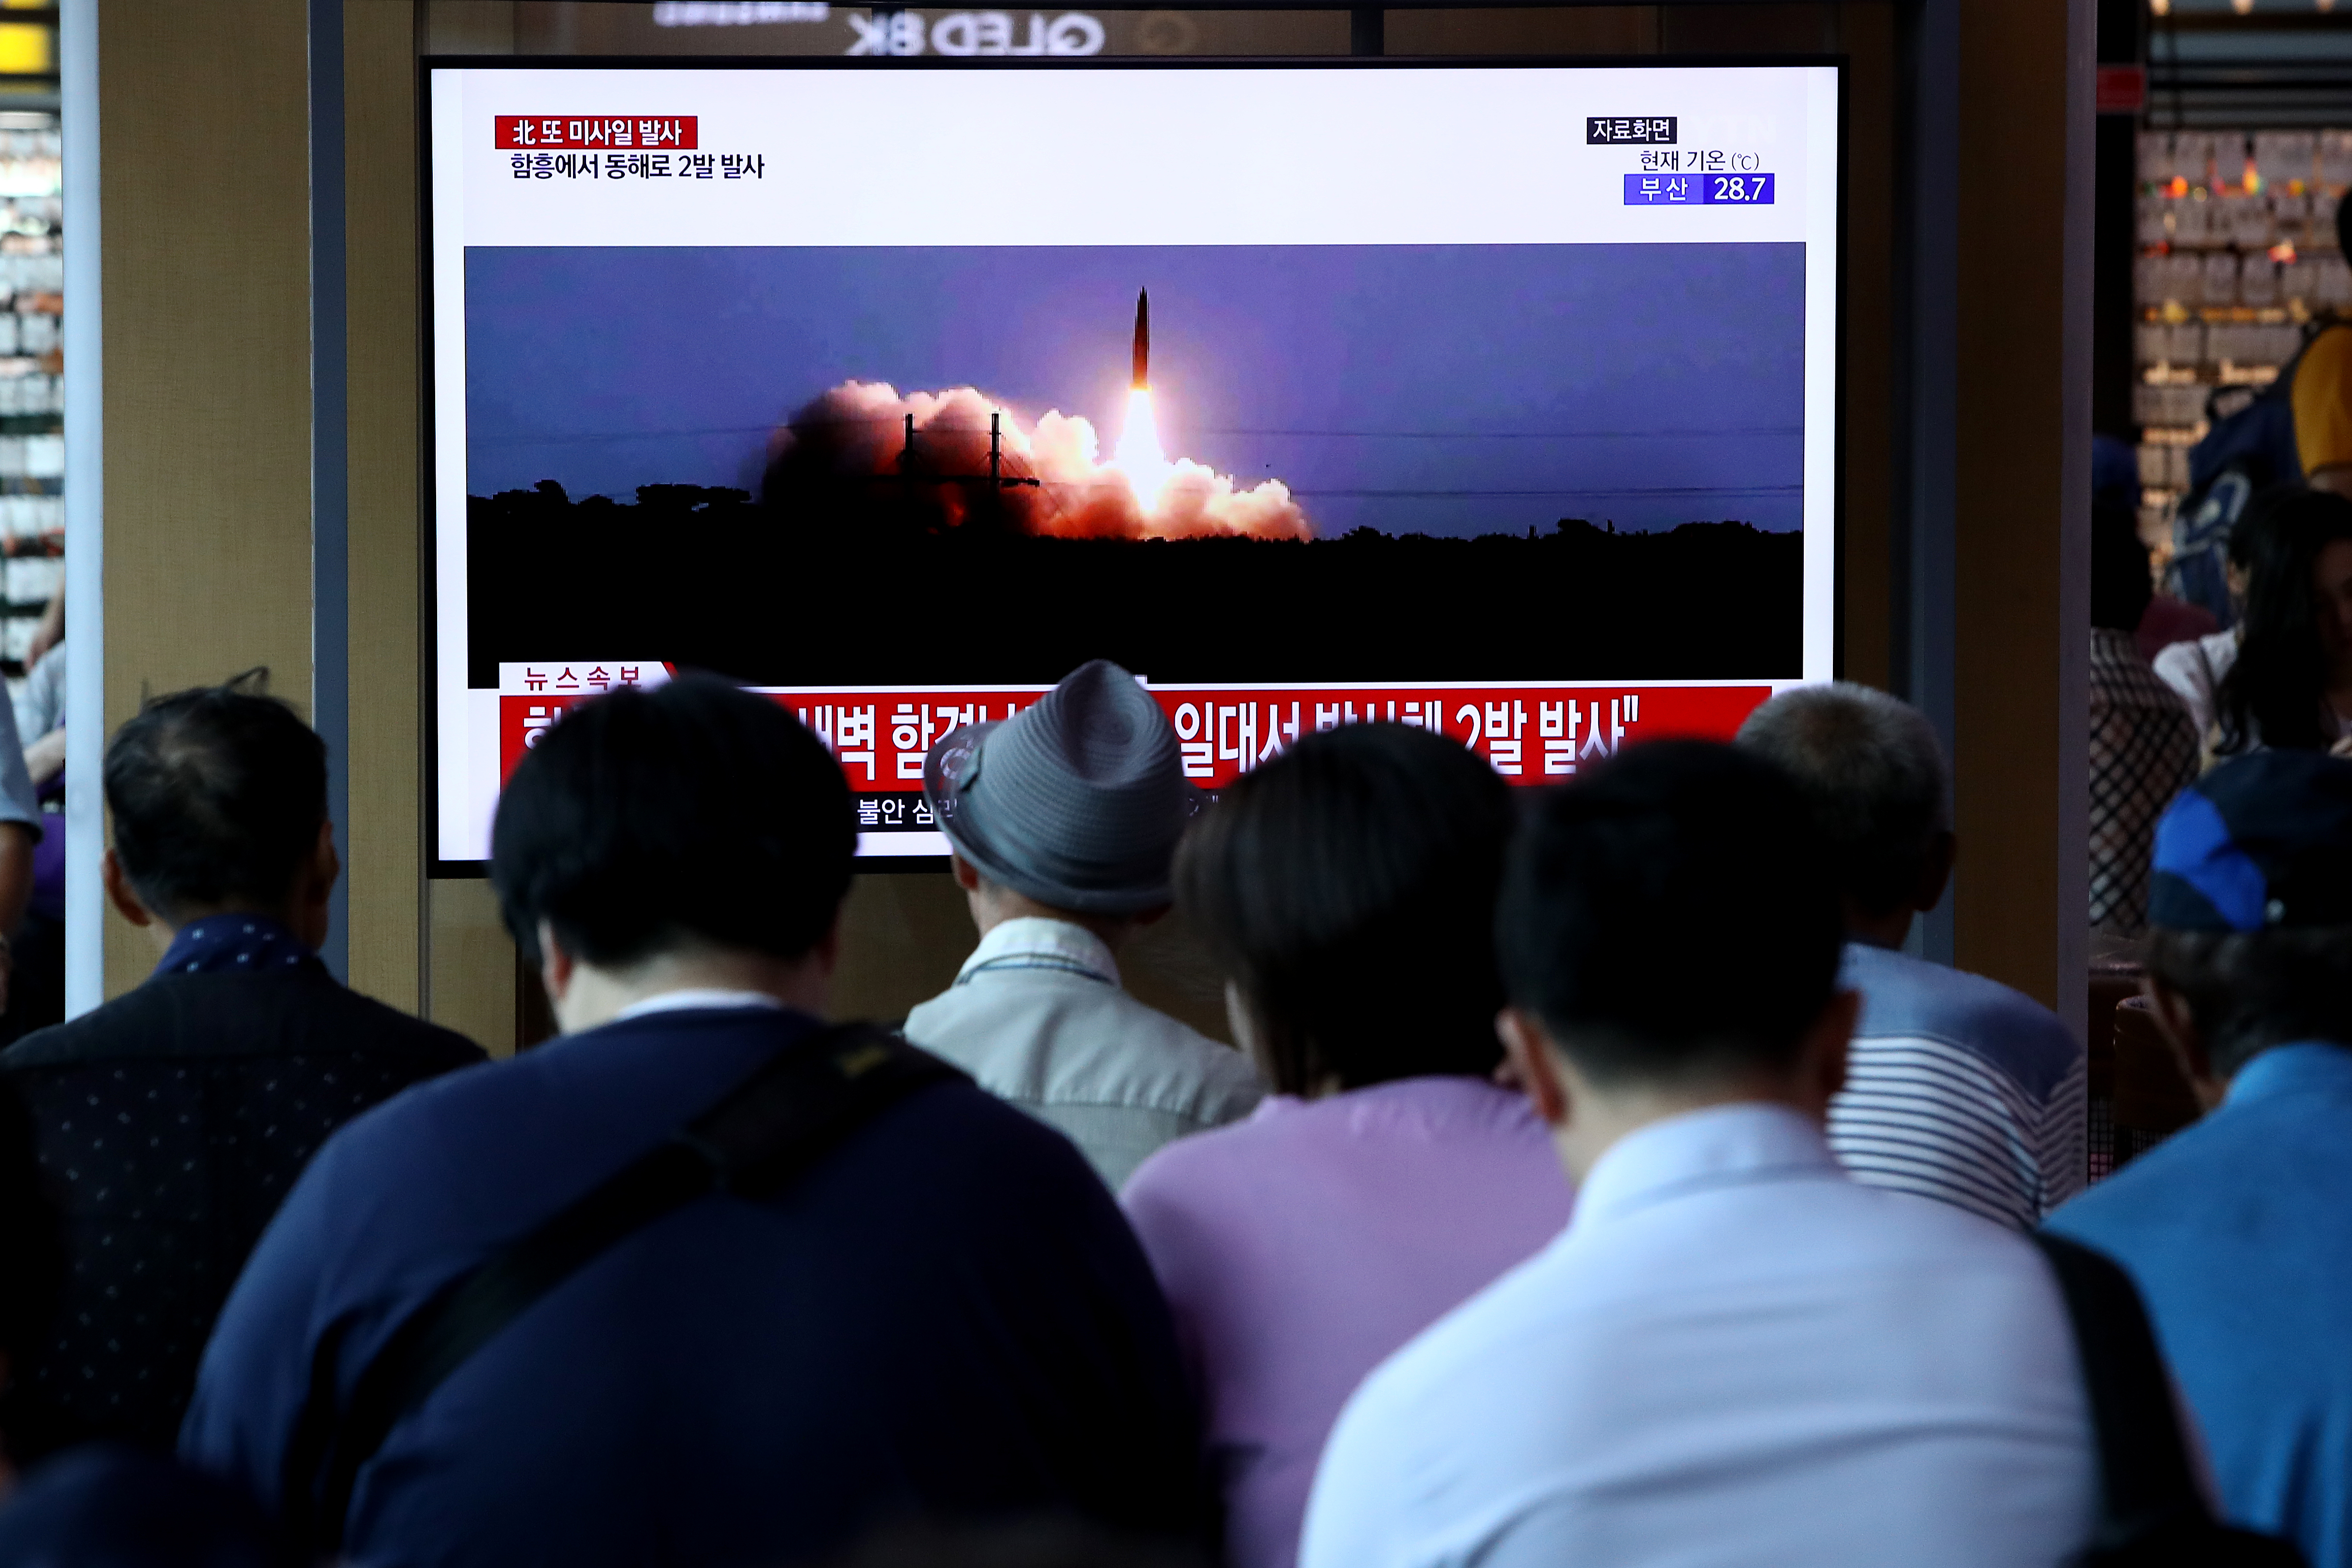 People watch a TV showing a file image of a North Korean missile launch at the Seoul Railway Station on August 10, 2019 in Seoul, South Korea. (Photo by Chung Sung-Jun/Getty Images)